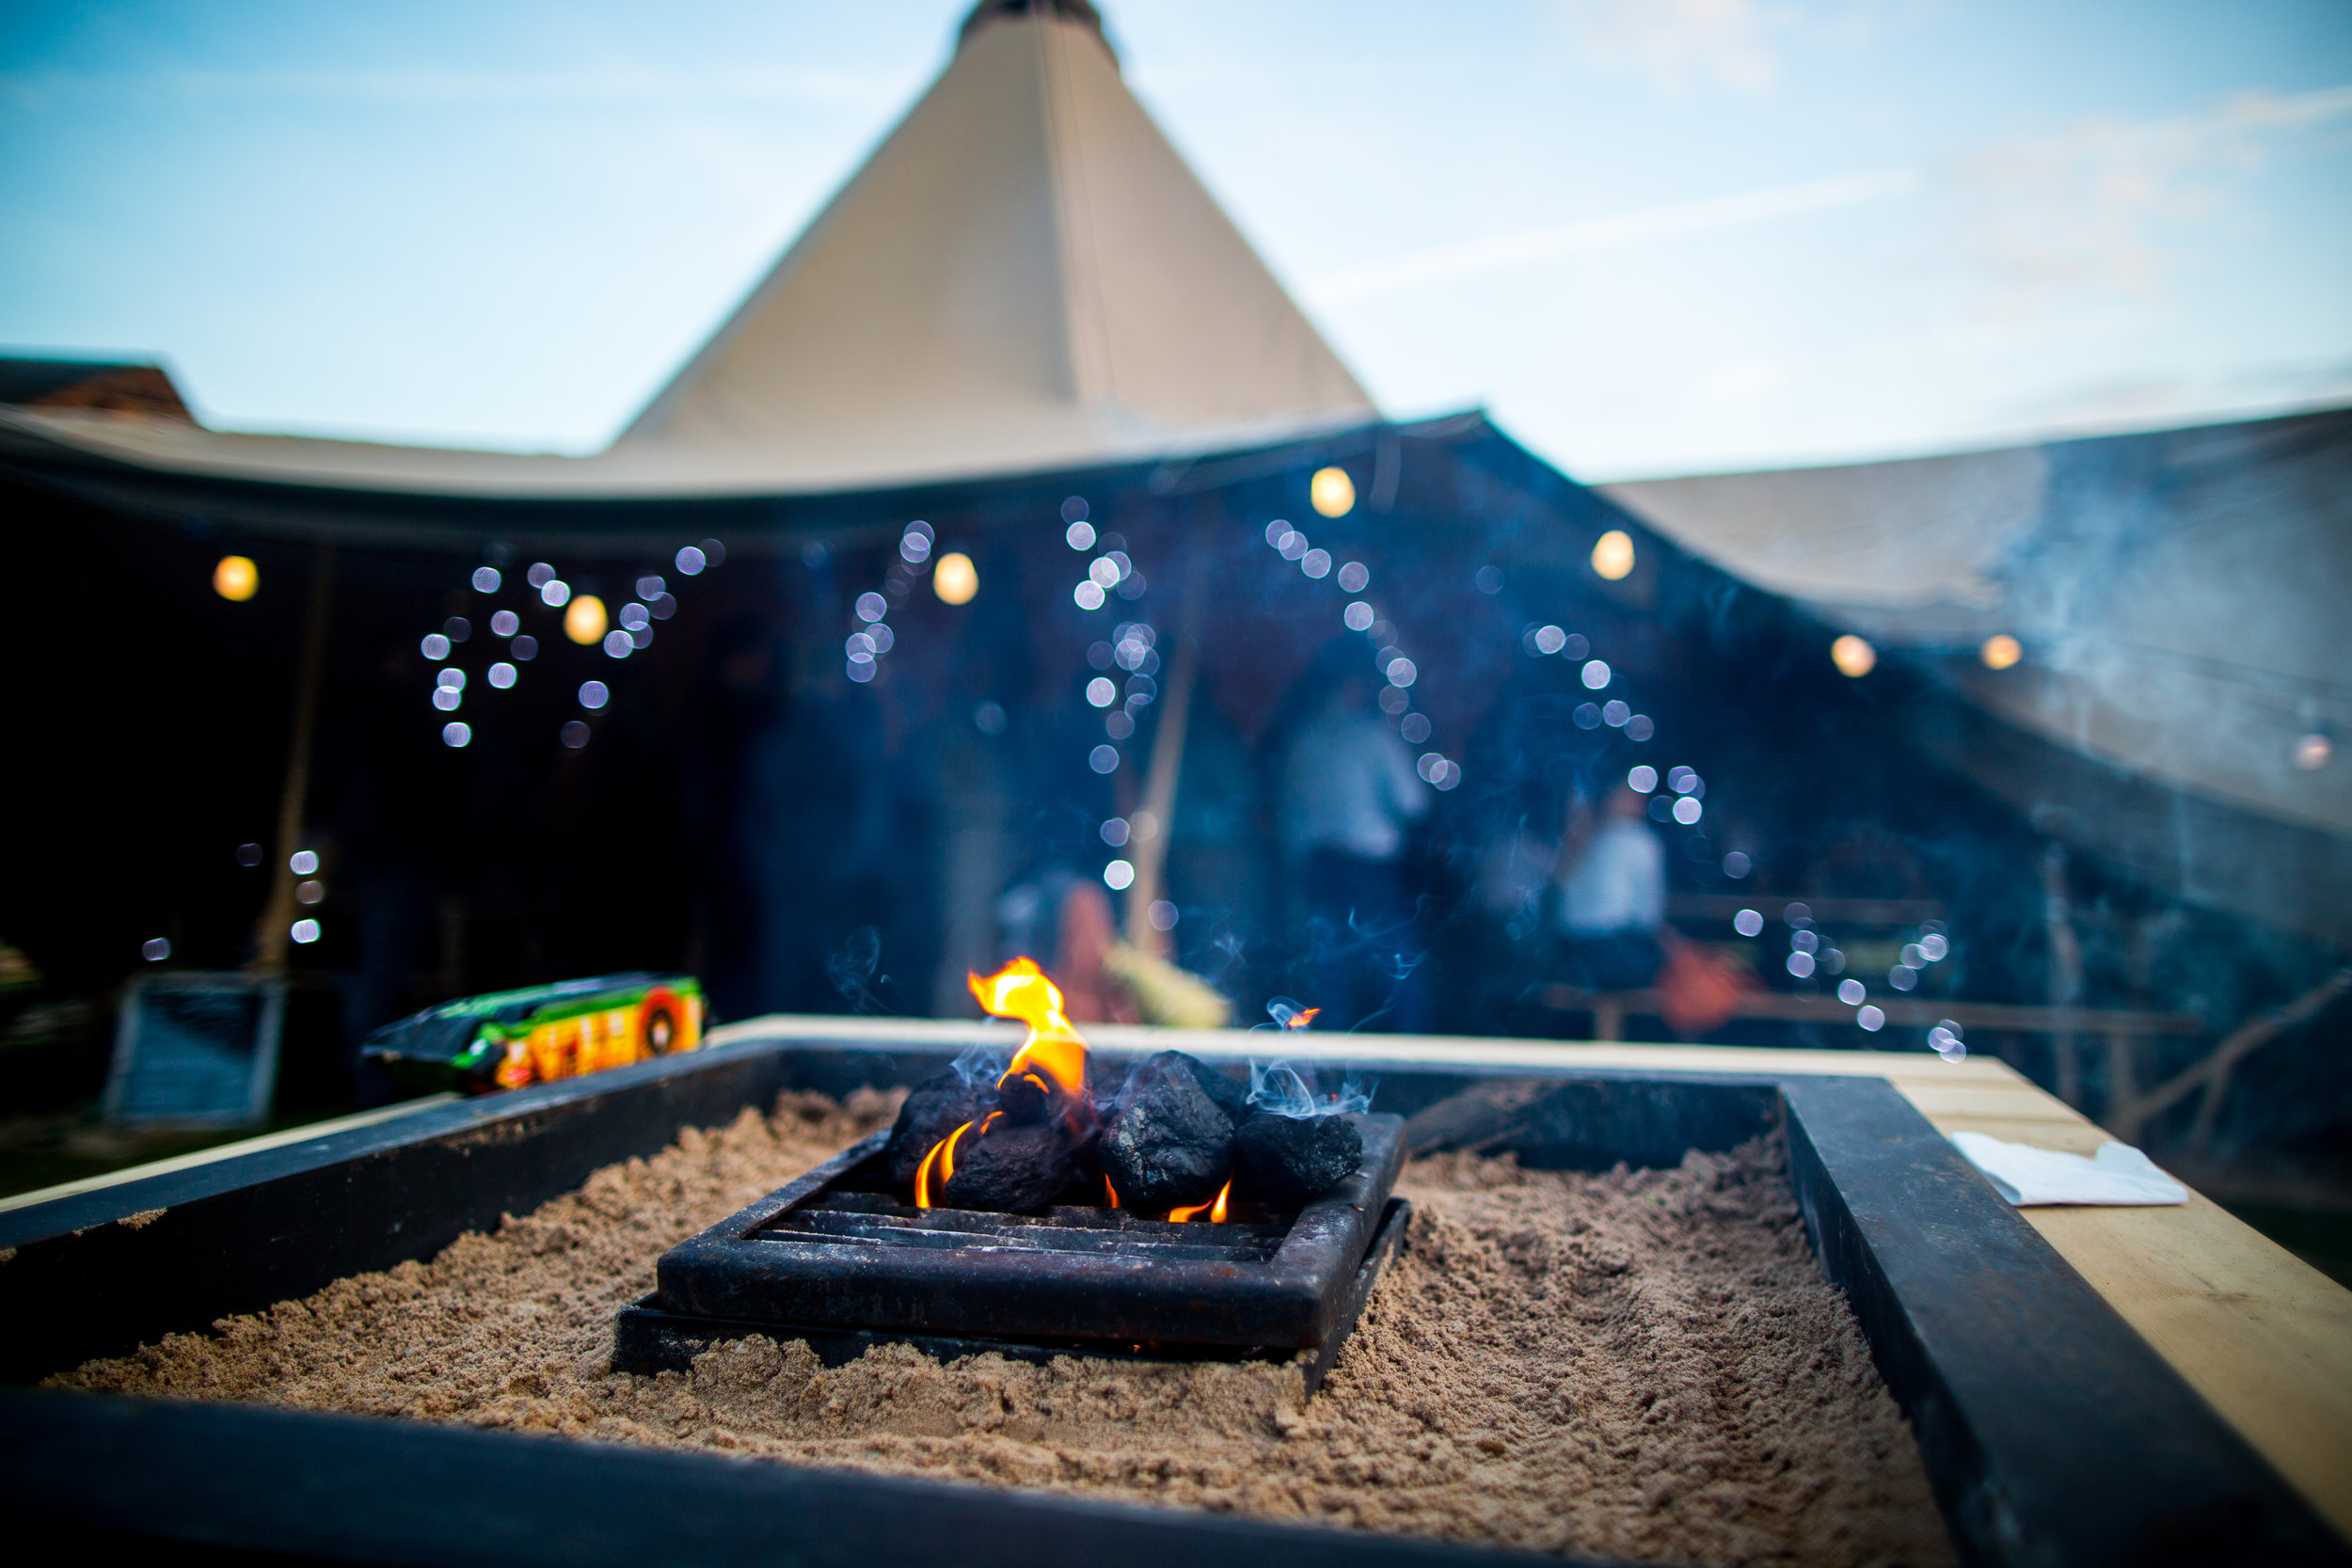 Business days look great in a tipi -